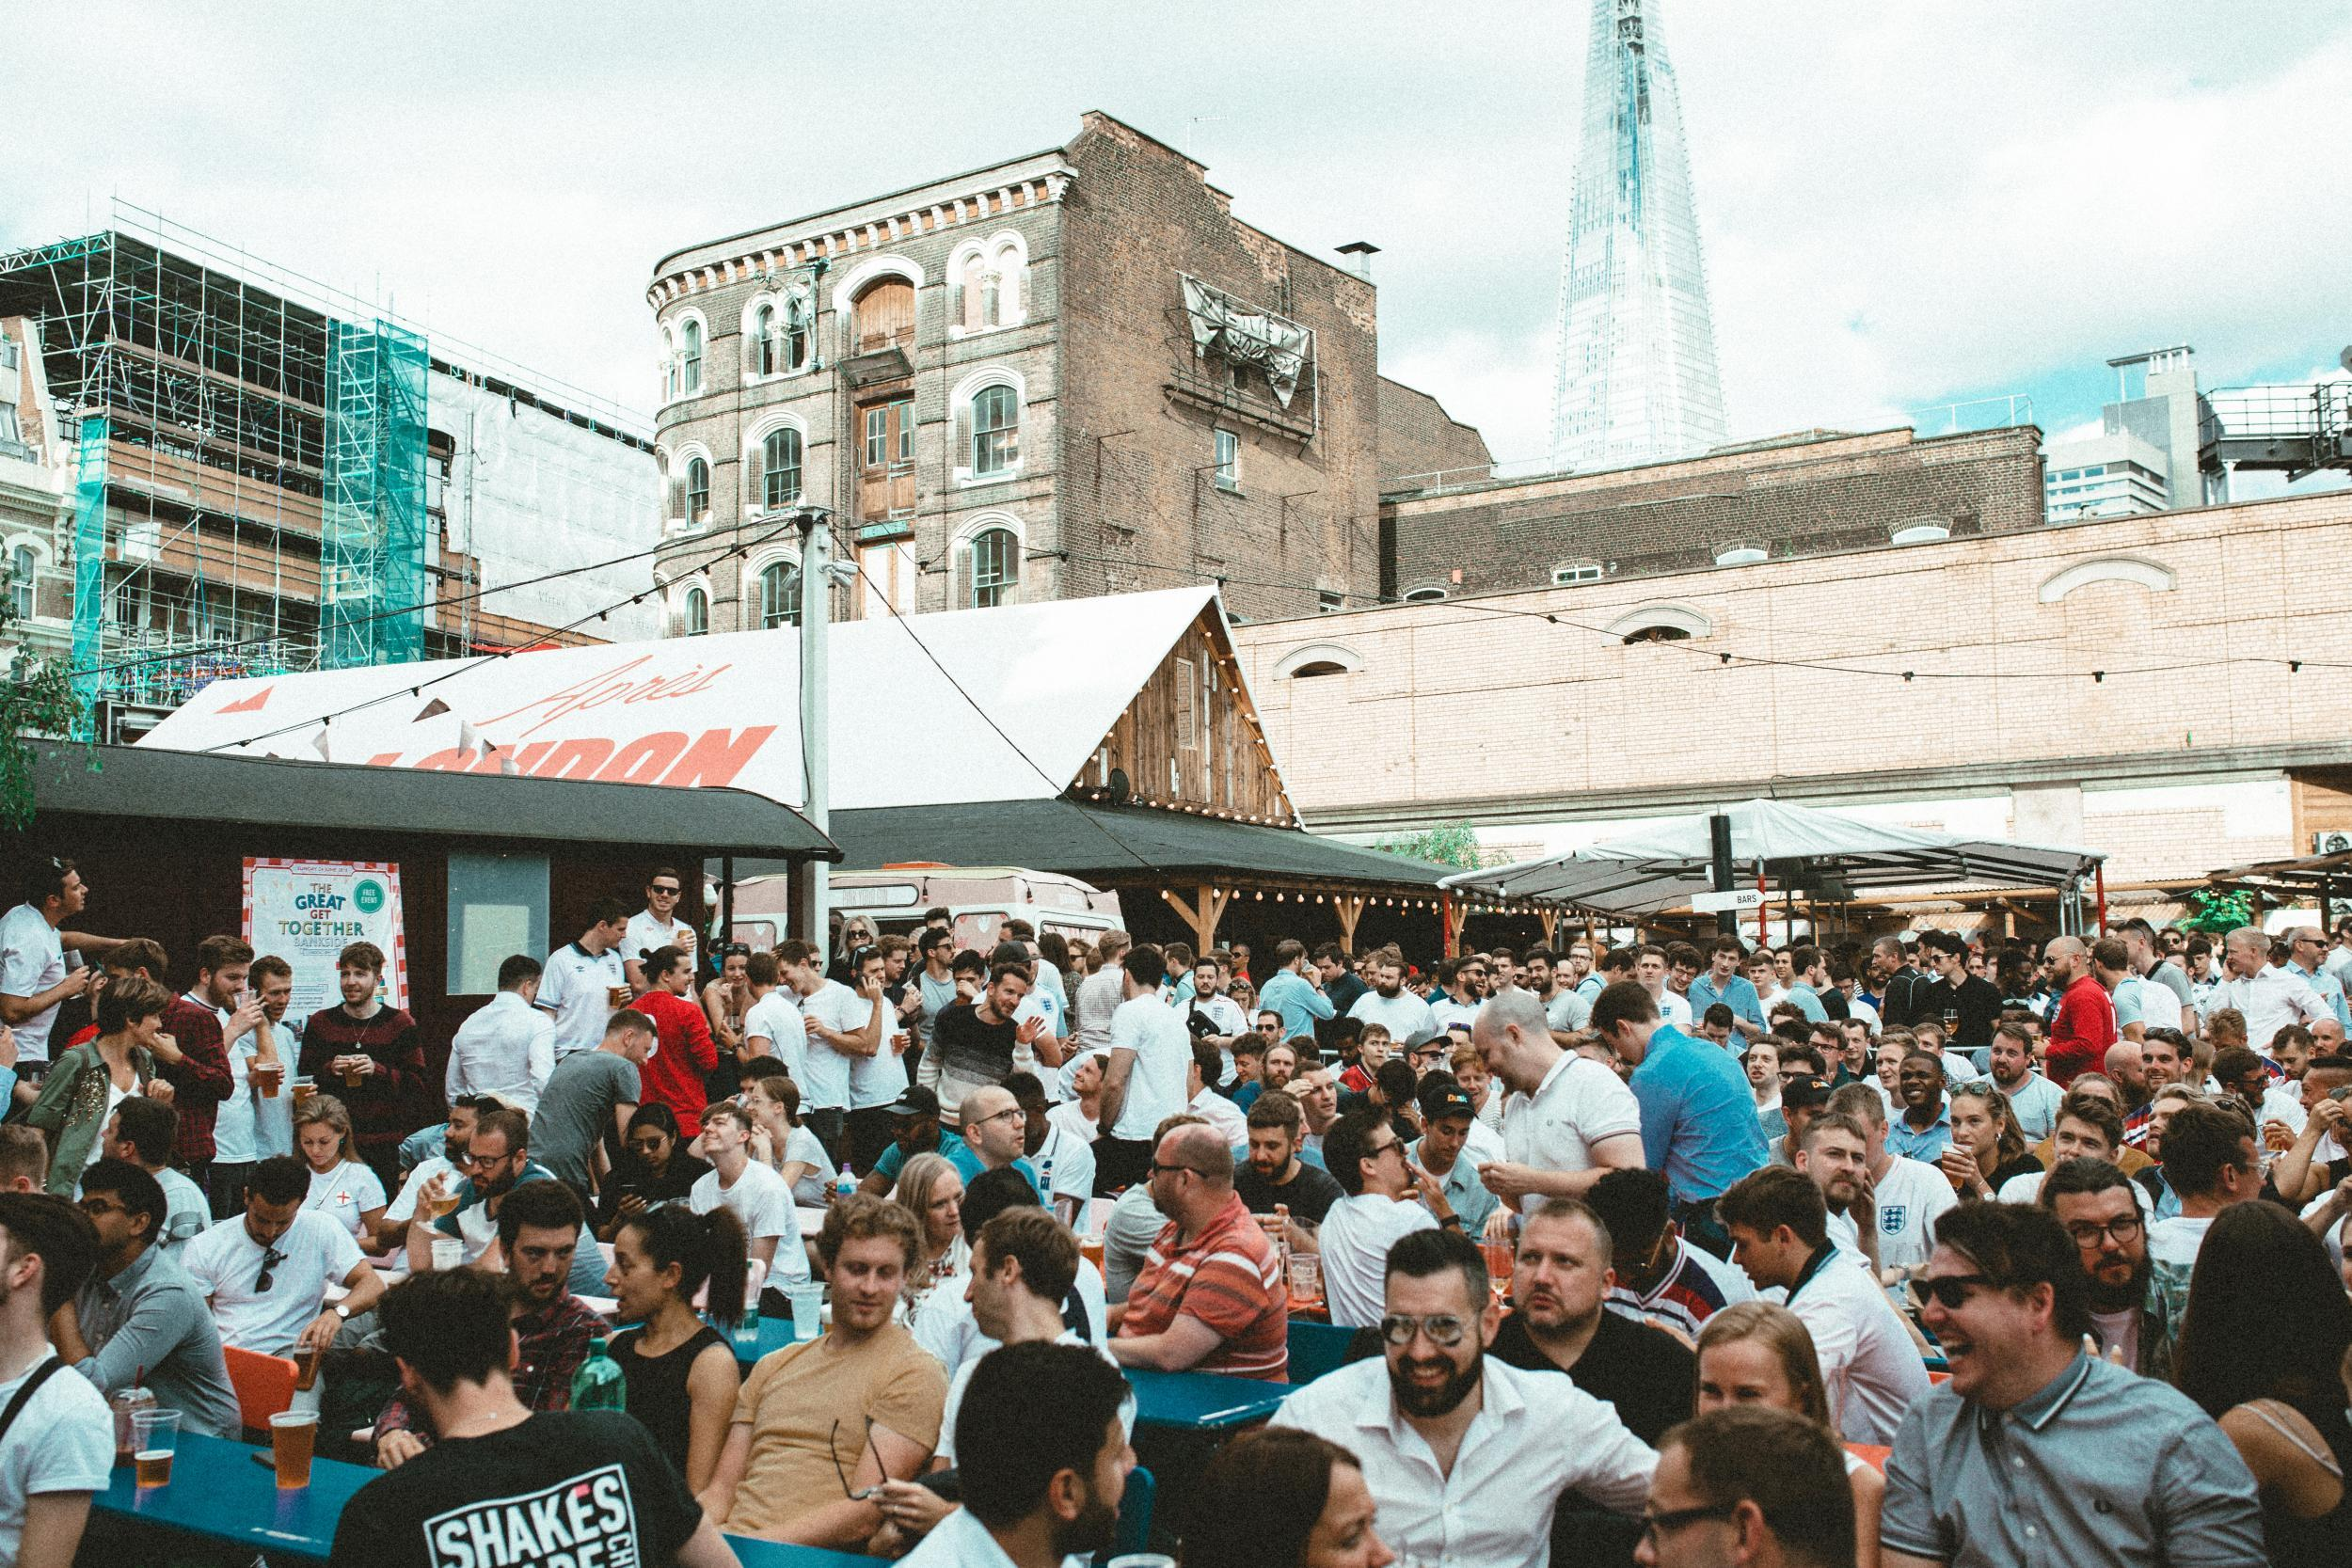 Rugby World Cup at Flat Iron Square | Clink Hostels